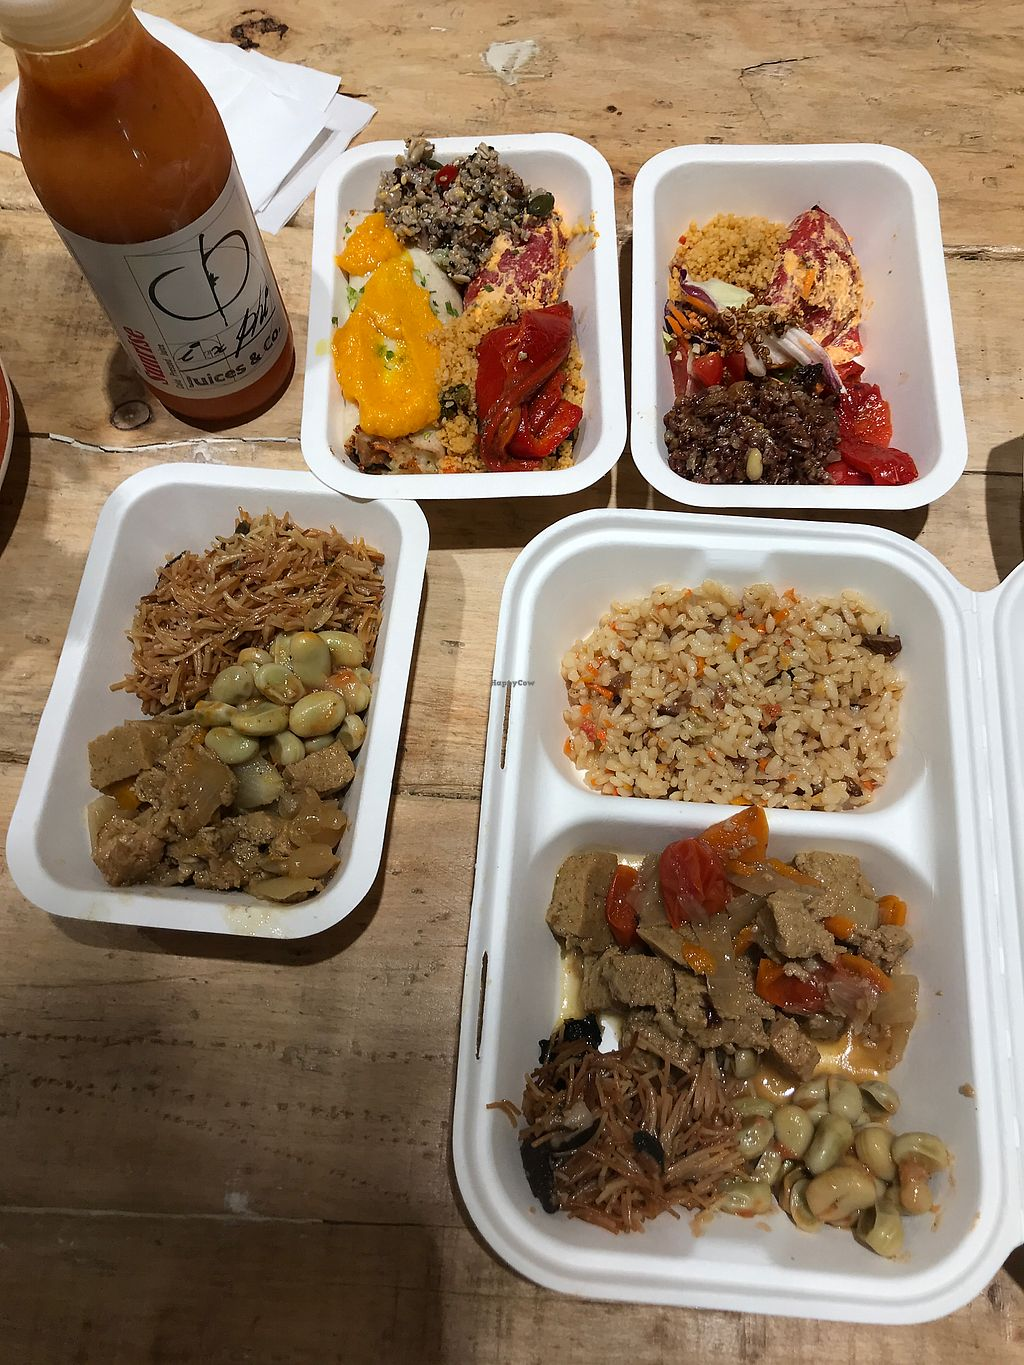 """Photo of Vega Raw Organic  by <a href=""""/members/profile/Emiii"""">Emiii</a> <br/>The food from the buffet. Around 24€ with the juice bottle <br/> September 9, 2017  - <a href='/contact/abuse/image/94882/302496'>Report</a>"""